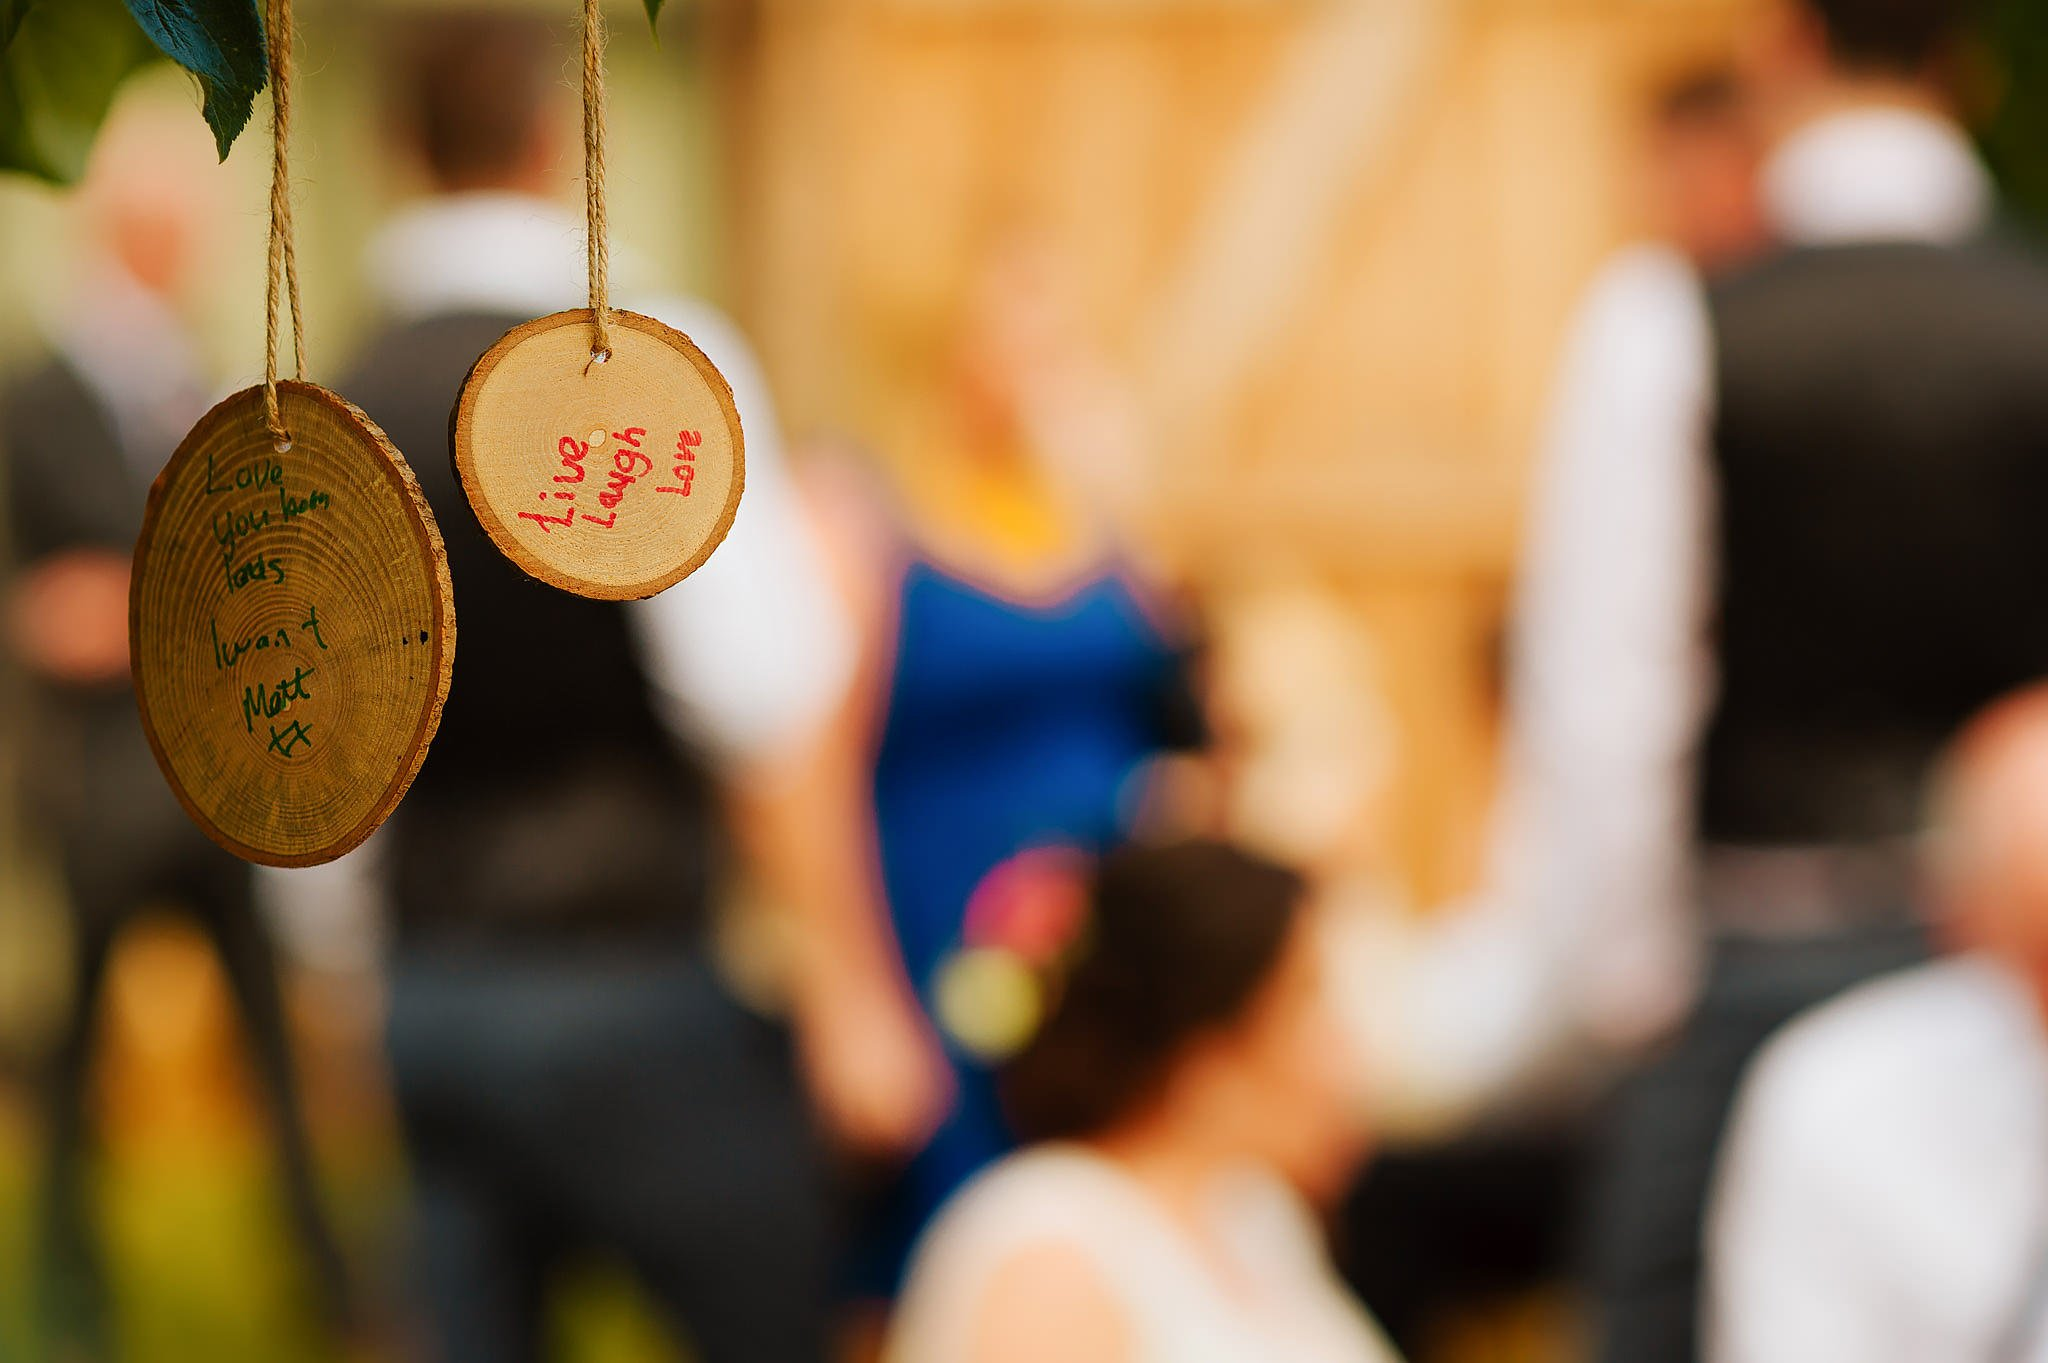 Wedding photography at Hellens Manor in Herefordshire, West Midlands | Shelley + Ian 96